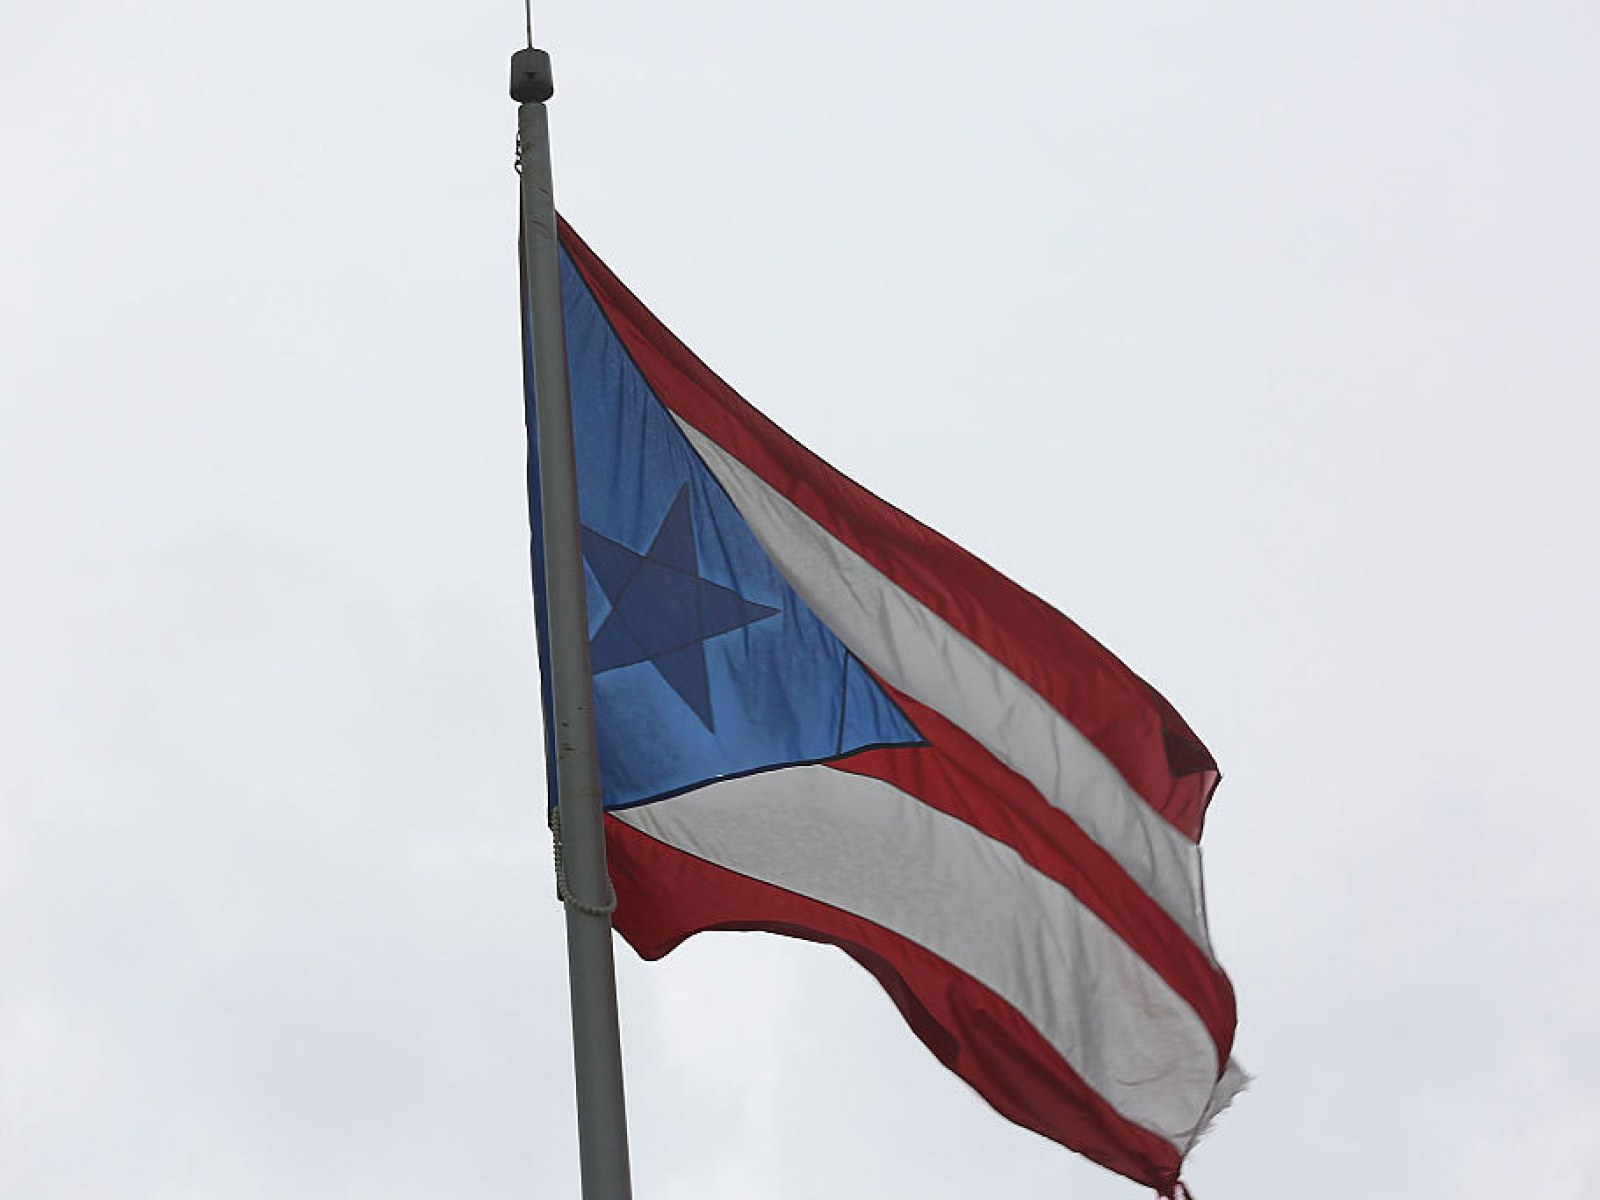 Army Veteran Told Not To Fly Puerto Rican Flag On Her Florida